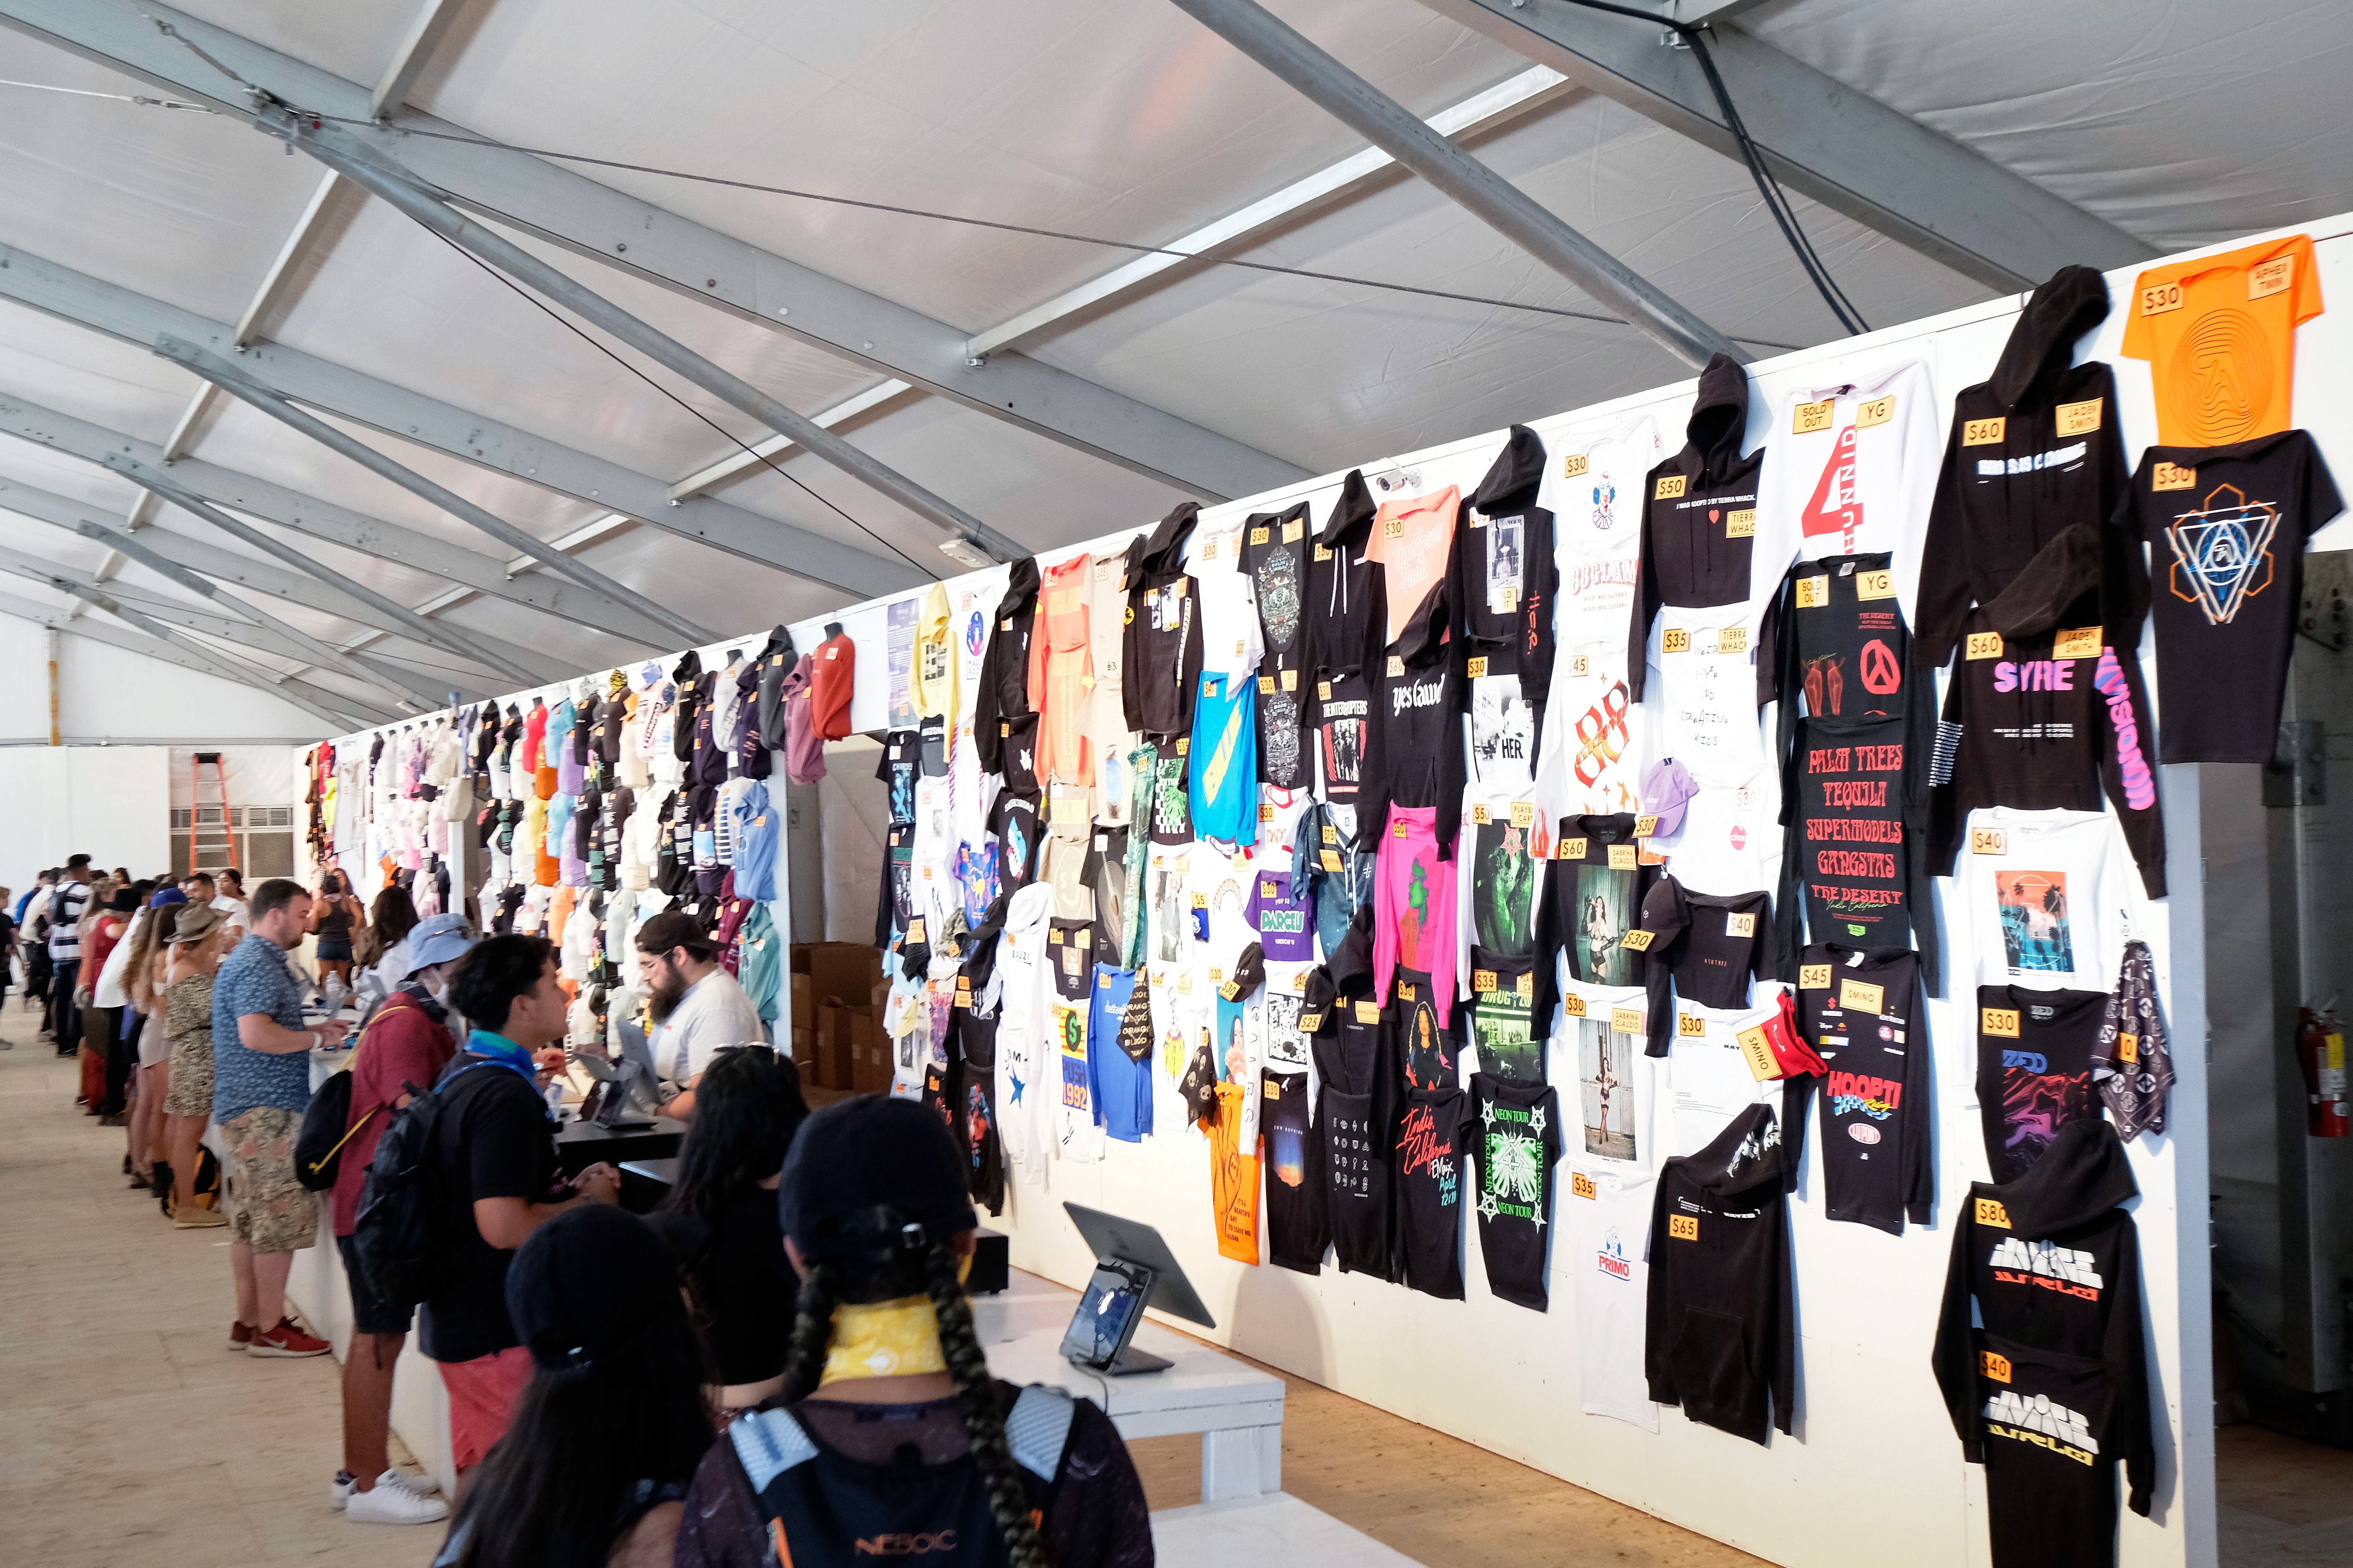 Festivalgoers at the Merchandise Tent during the 2019 Coachella Valley Music And Arts Festival in Indio, California.